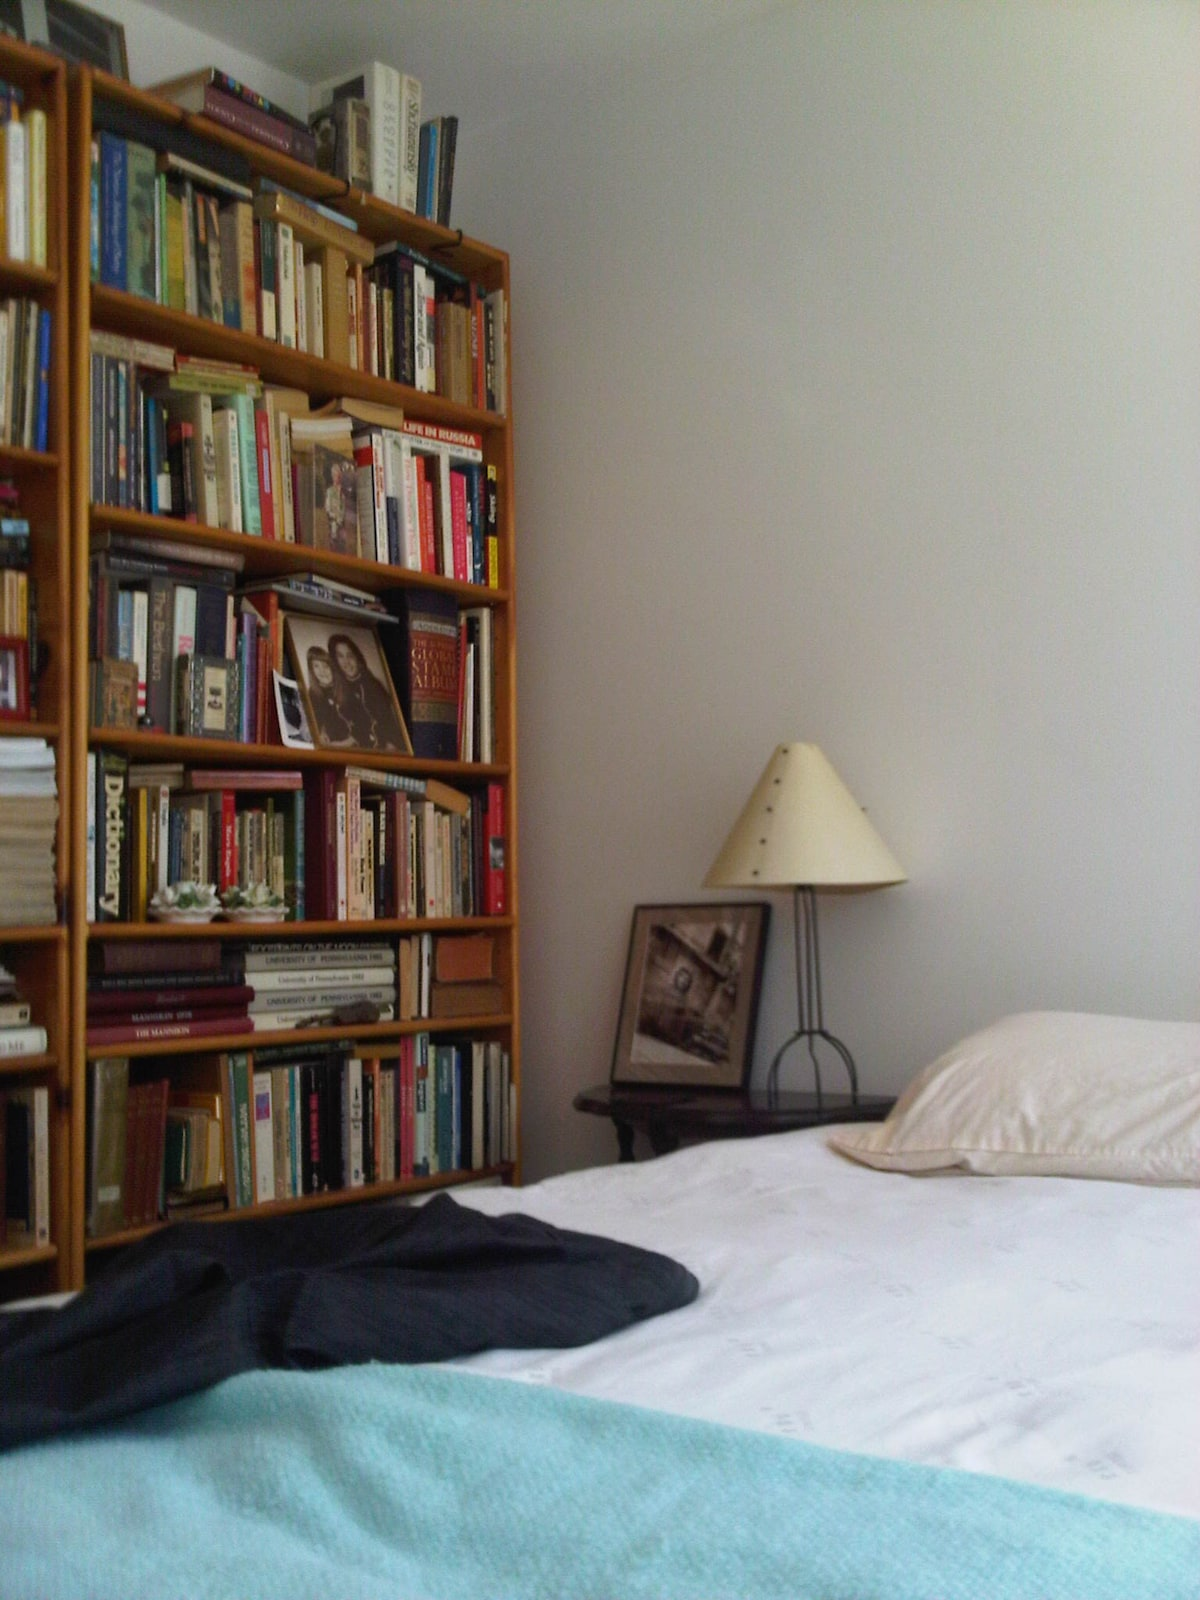 downstairs bedroom & bookcases